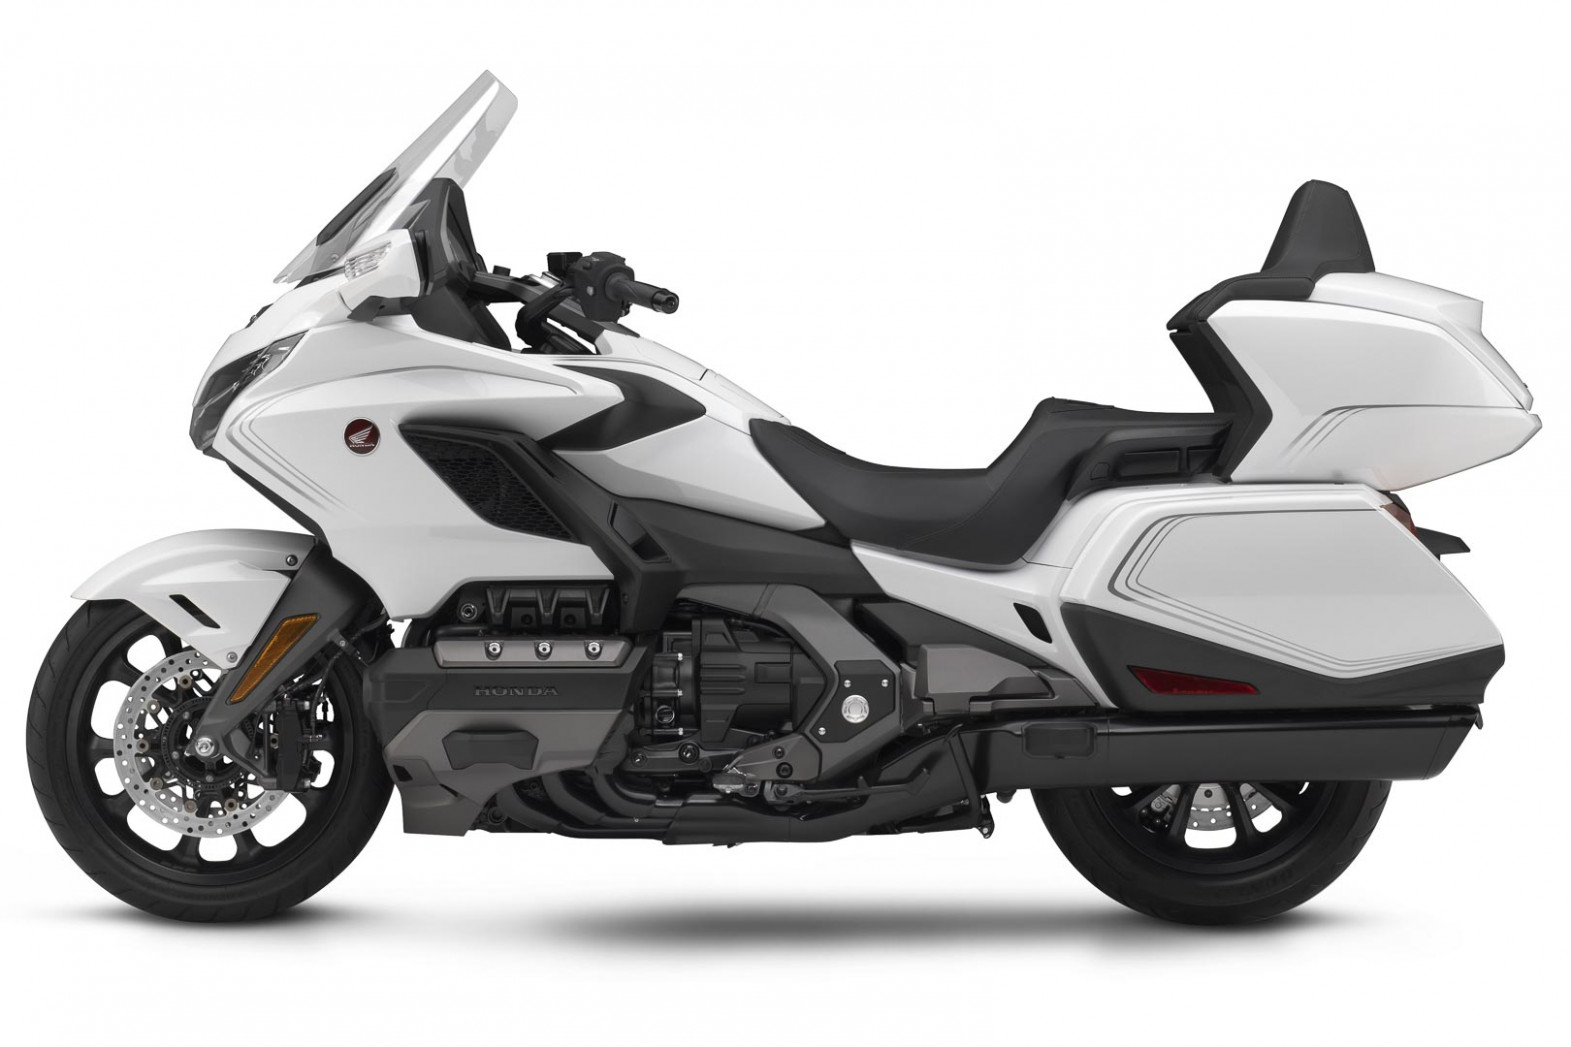 11 Honda Gold Wing Lineup First Look (11 Fast Facts)